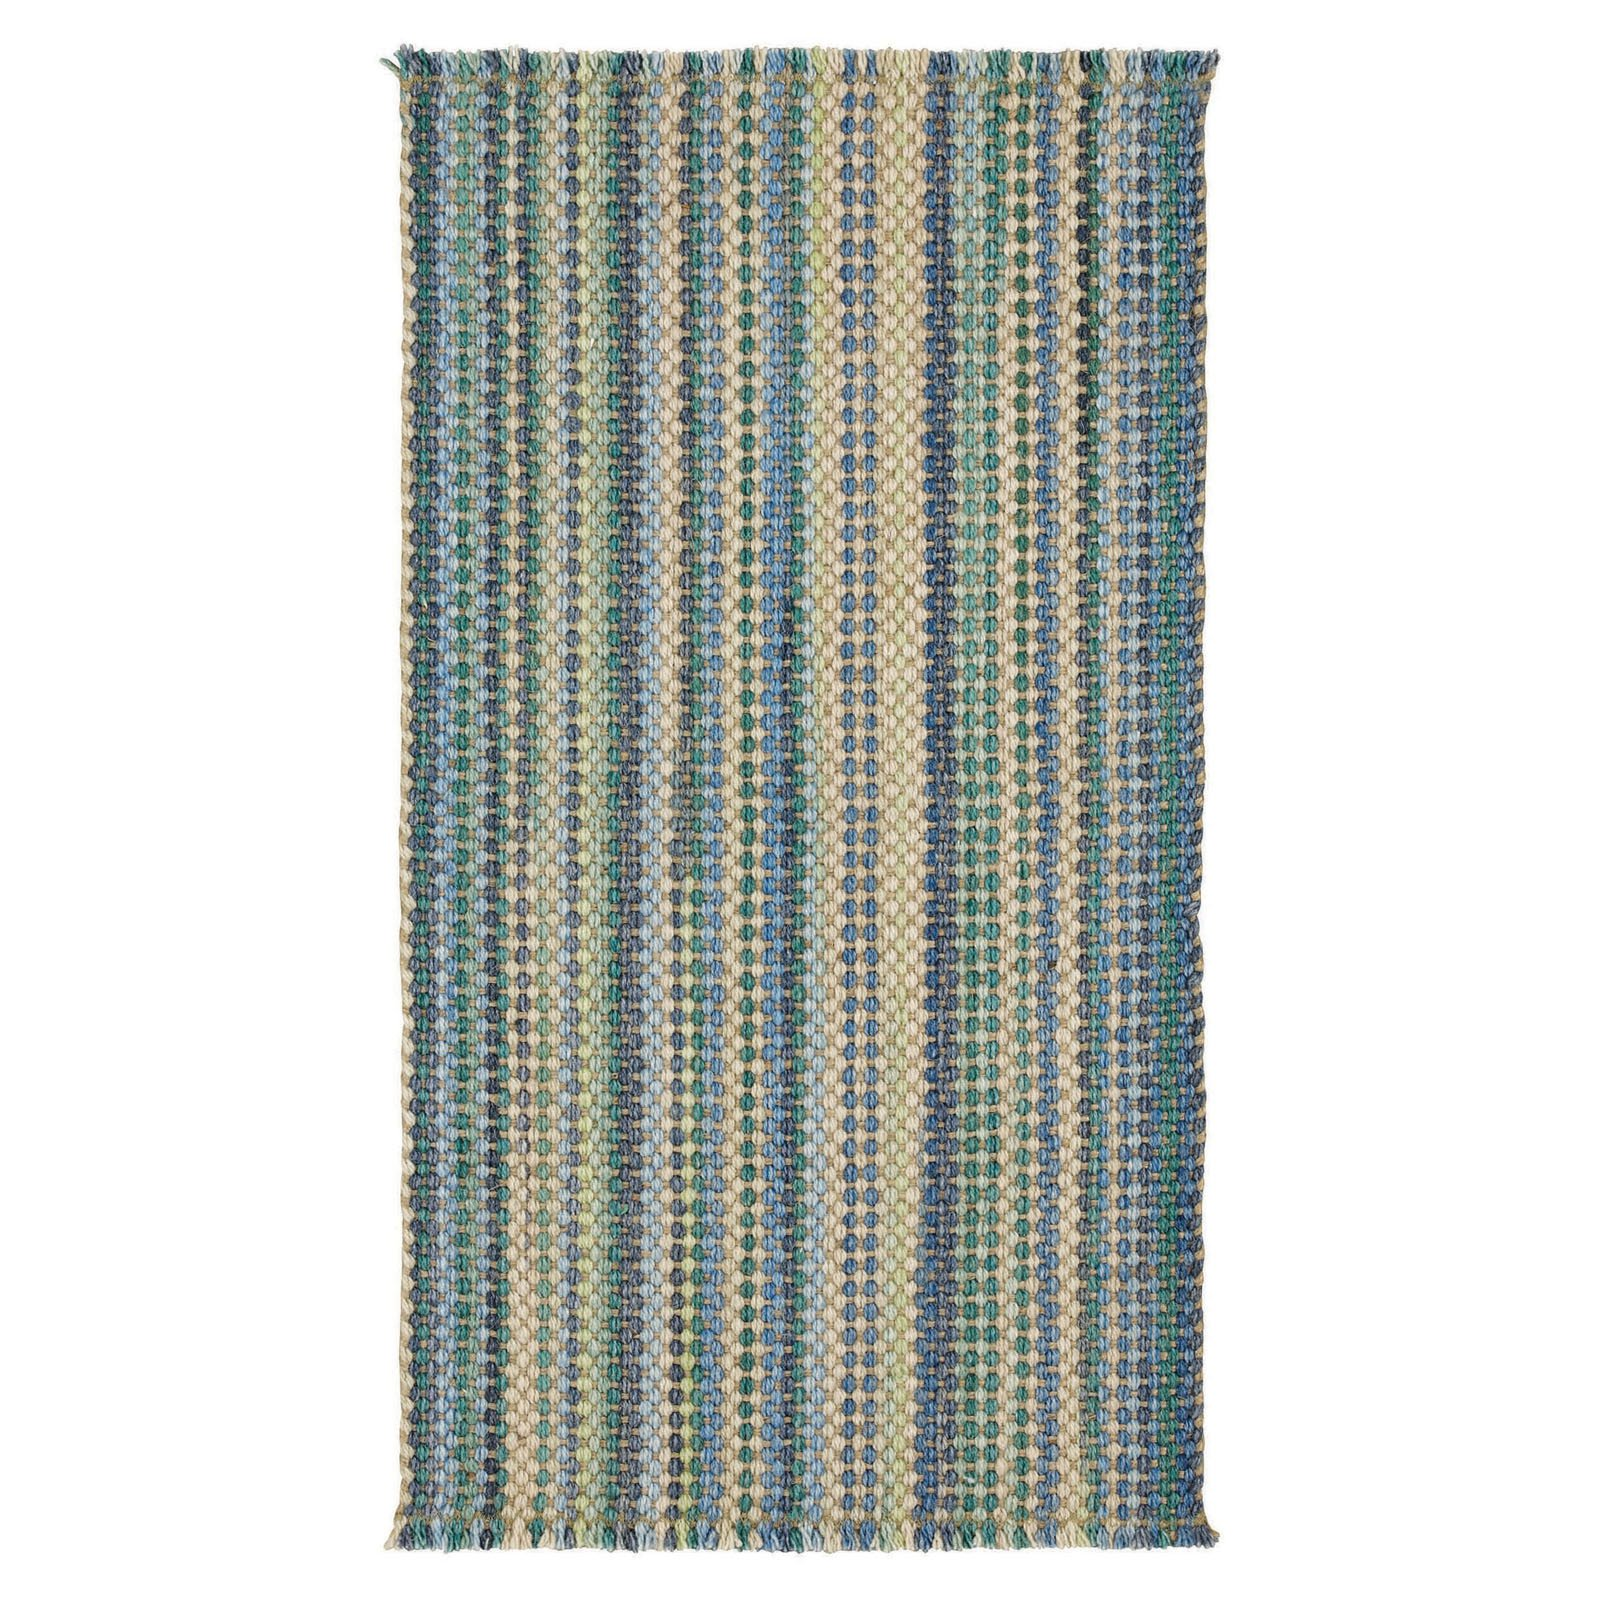 Nags Head 0404 Vertical Stripe Flat Woven Rectangle Area Rug - Blue